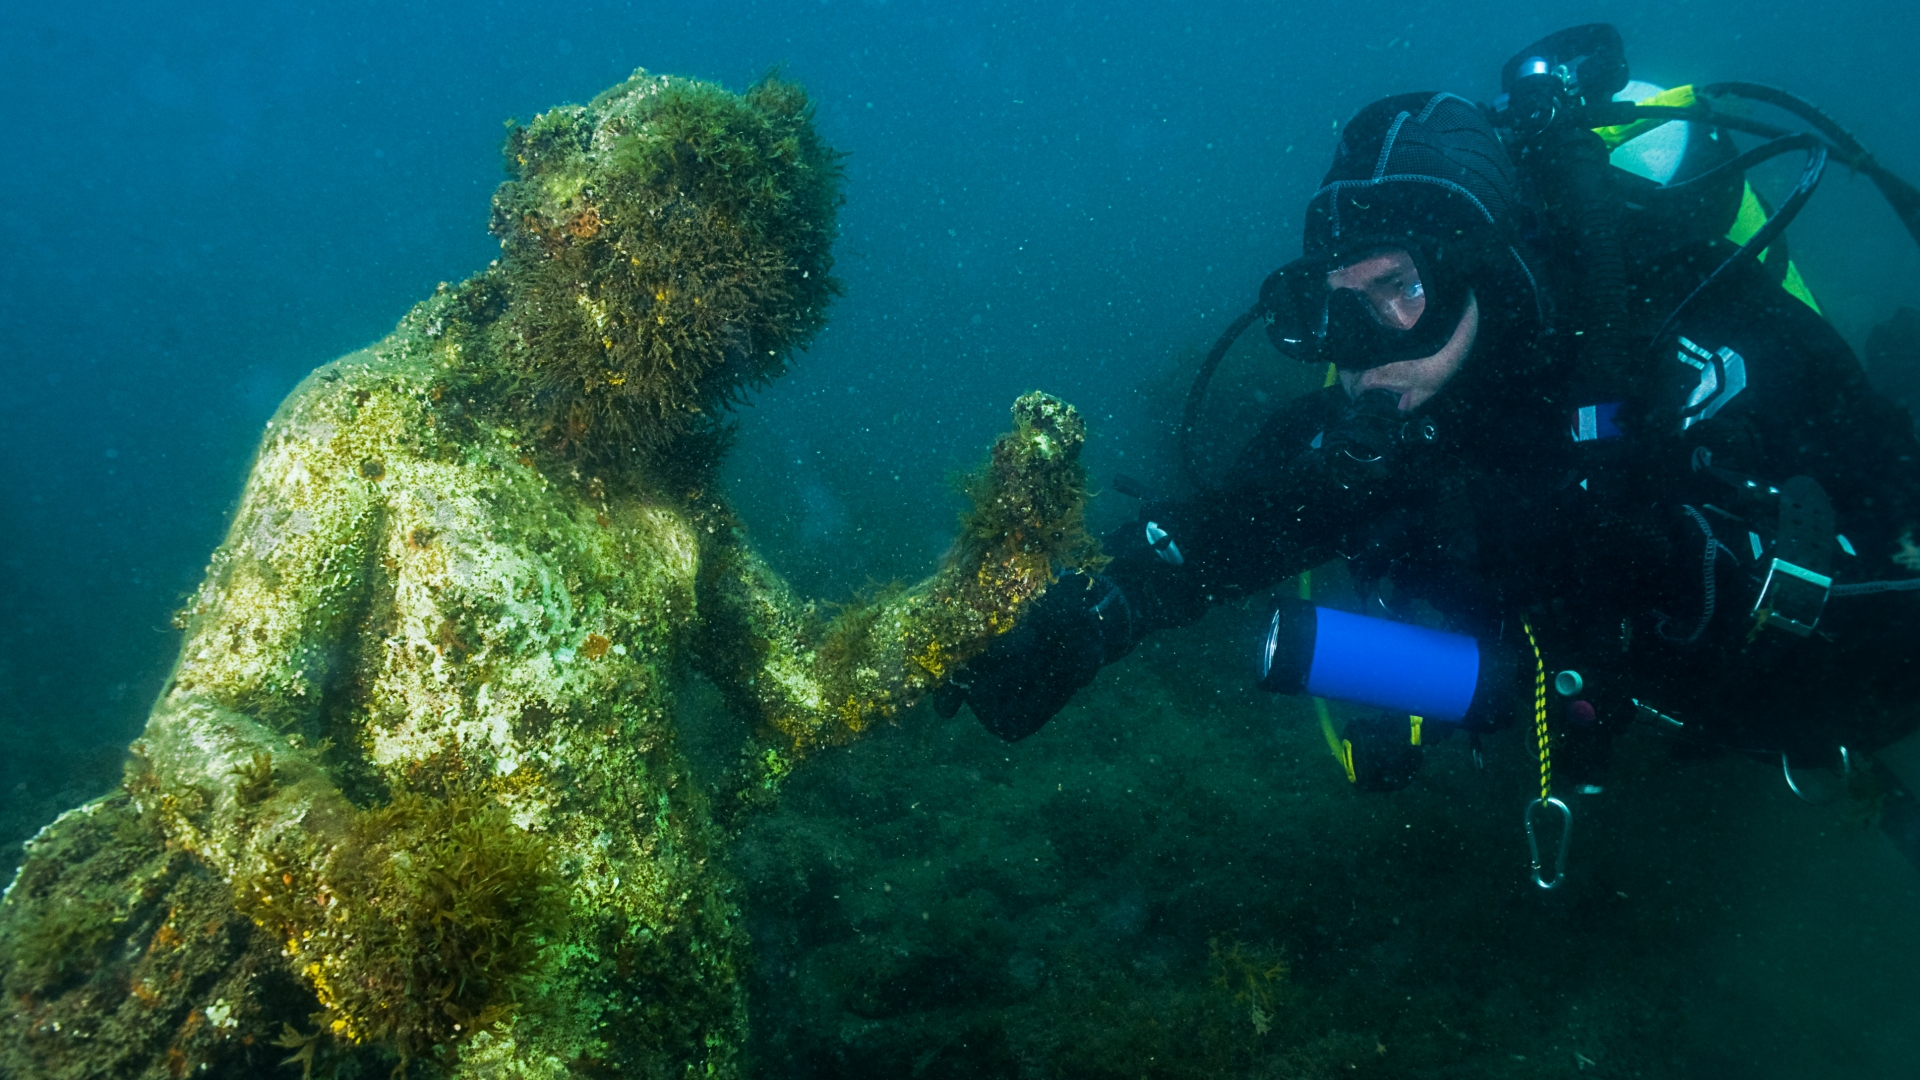 Statue of the Ninfeo in the underwater ancient Roman town in Baia. (Credit: Francesco Pacienza/Getty Images)